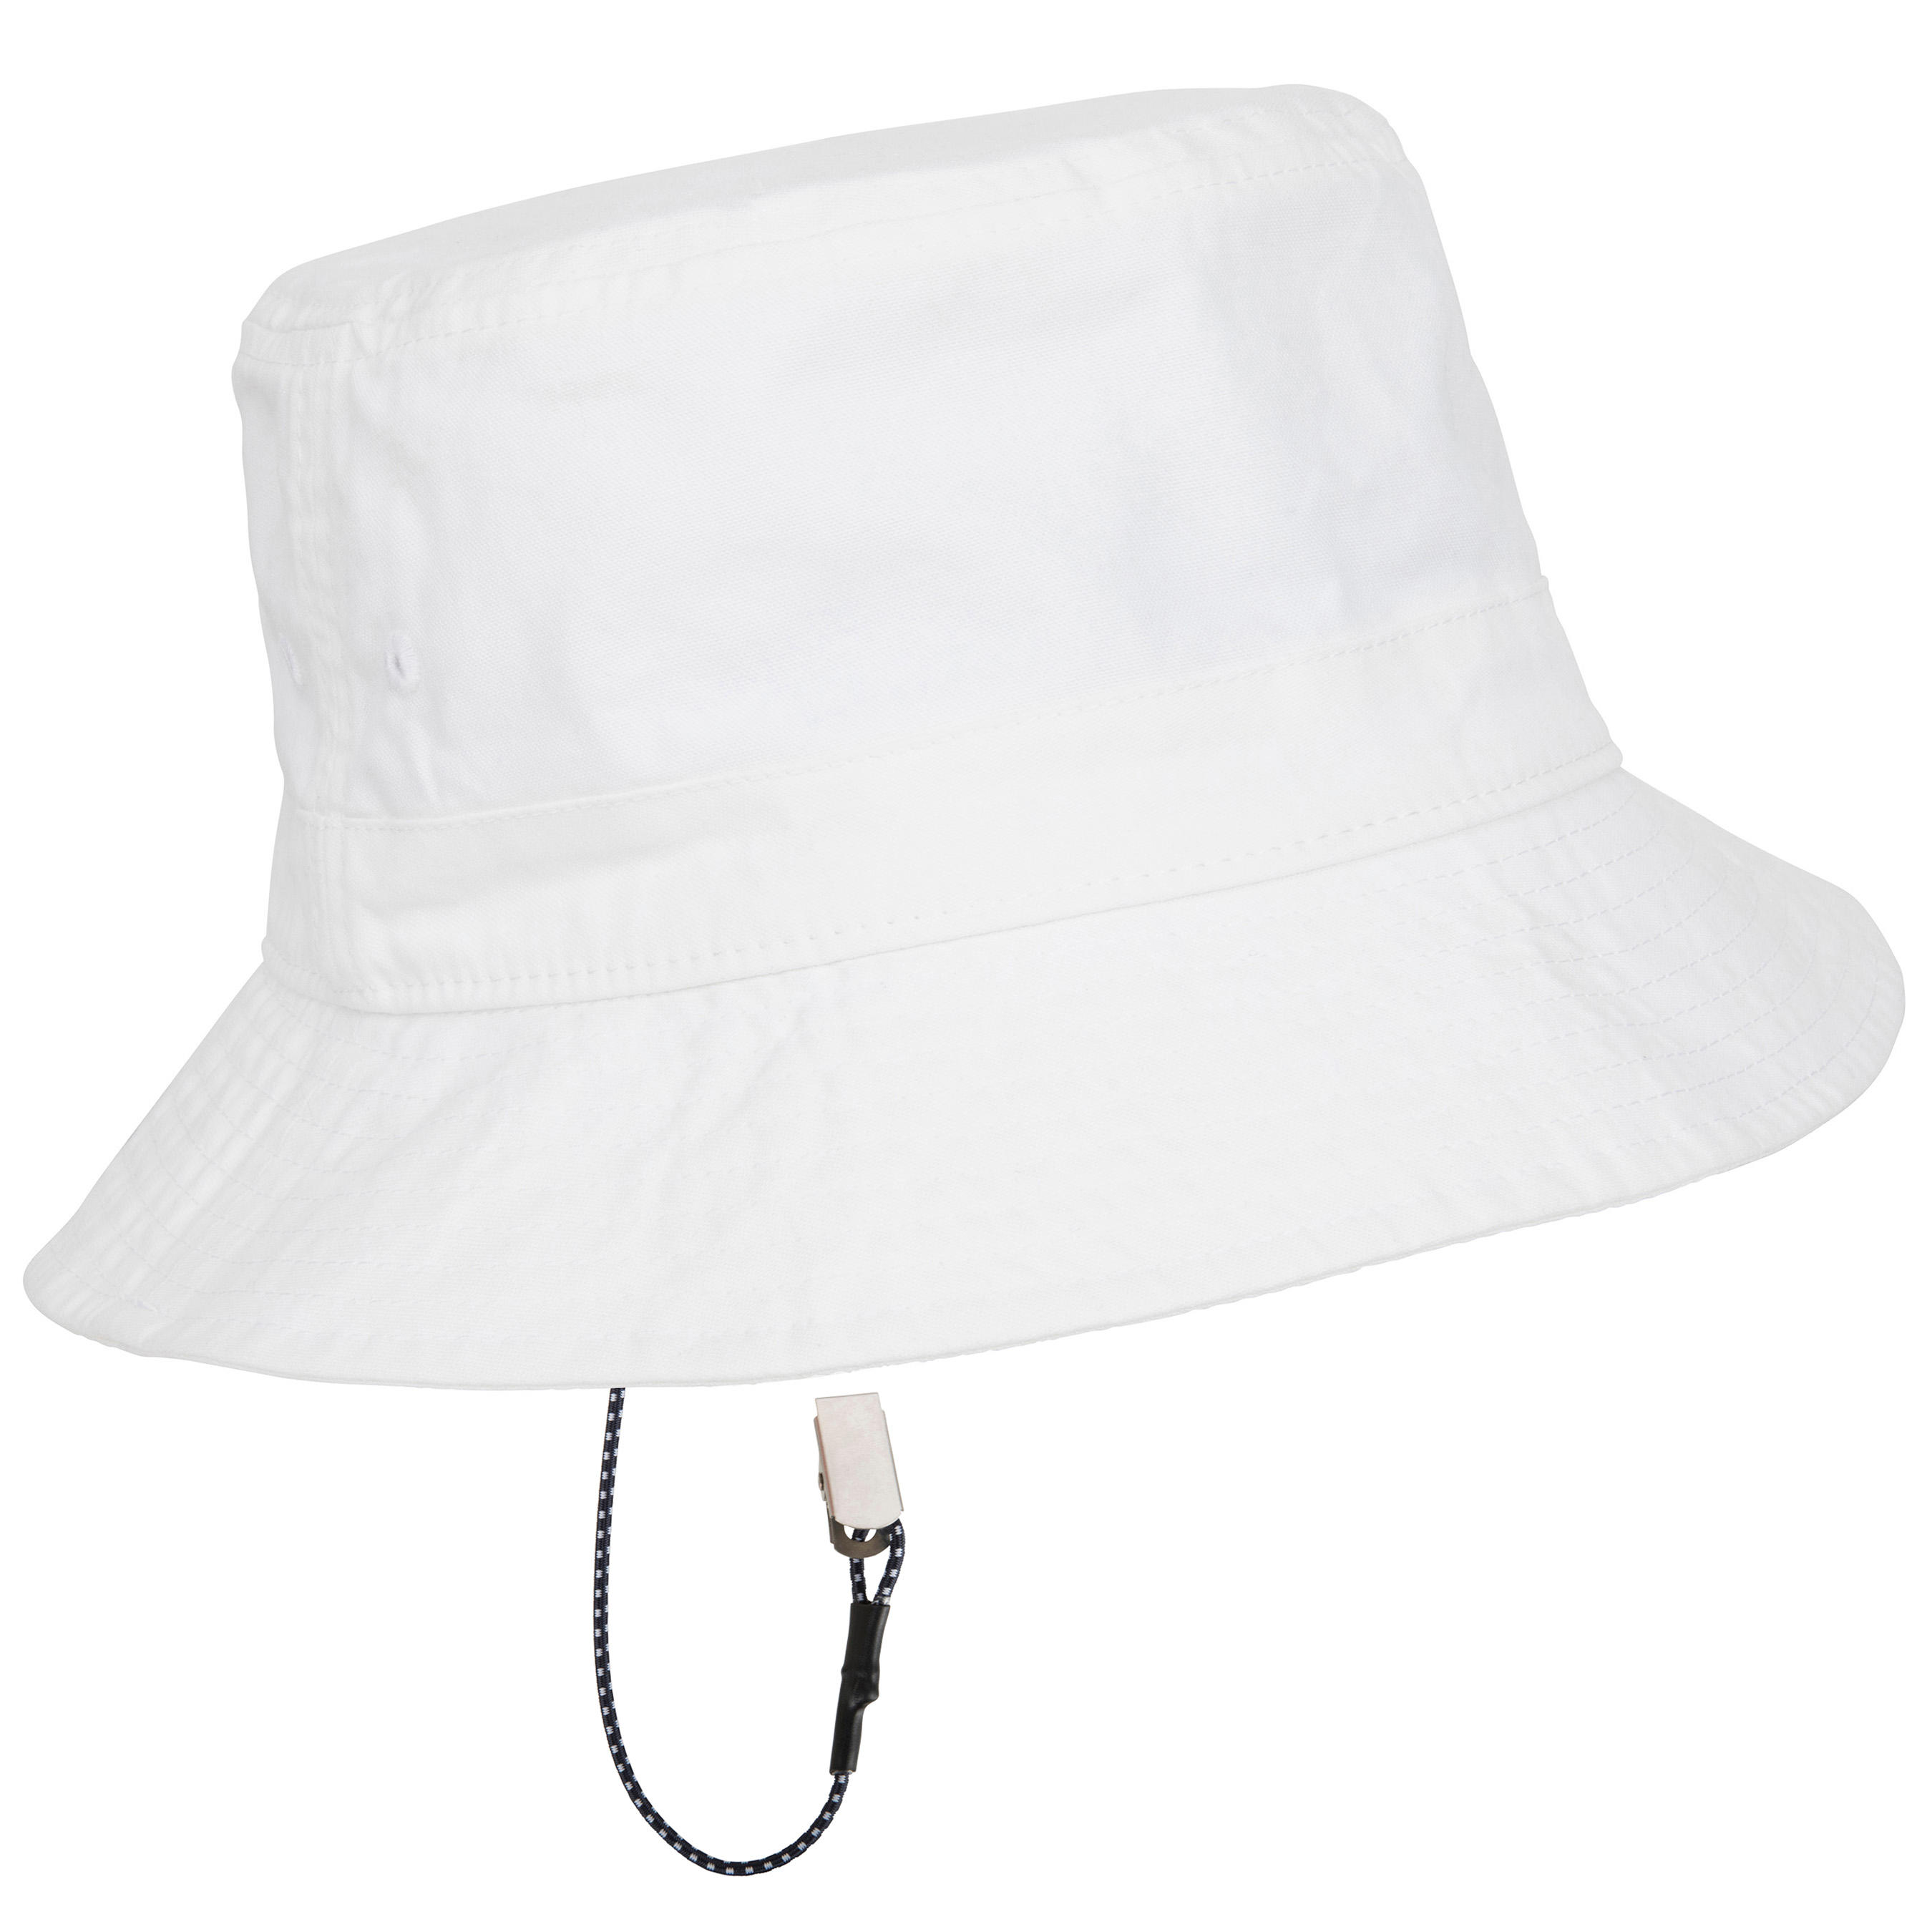 Cotton Adult Sailing Bob Hat - White